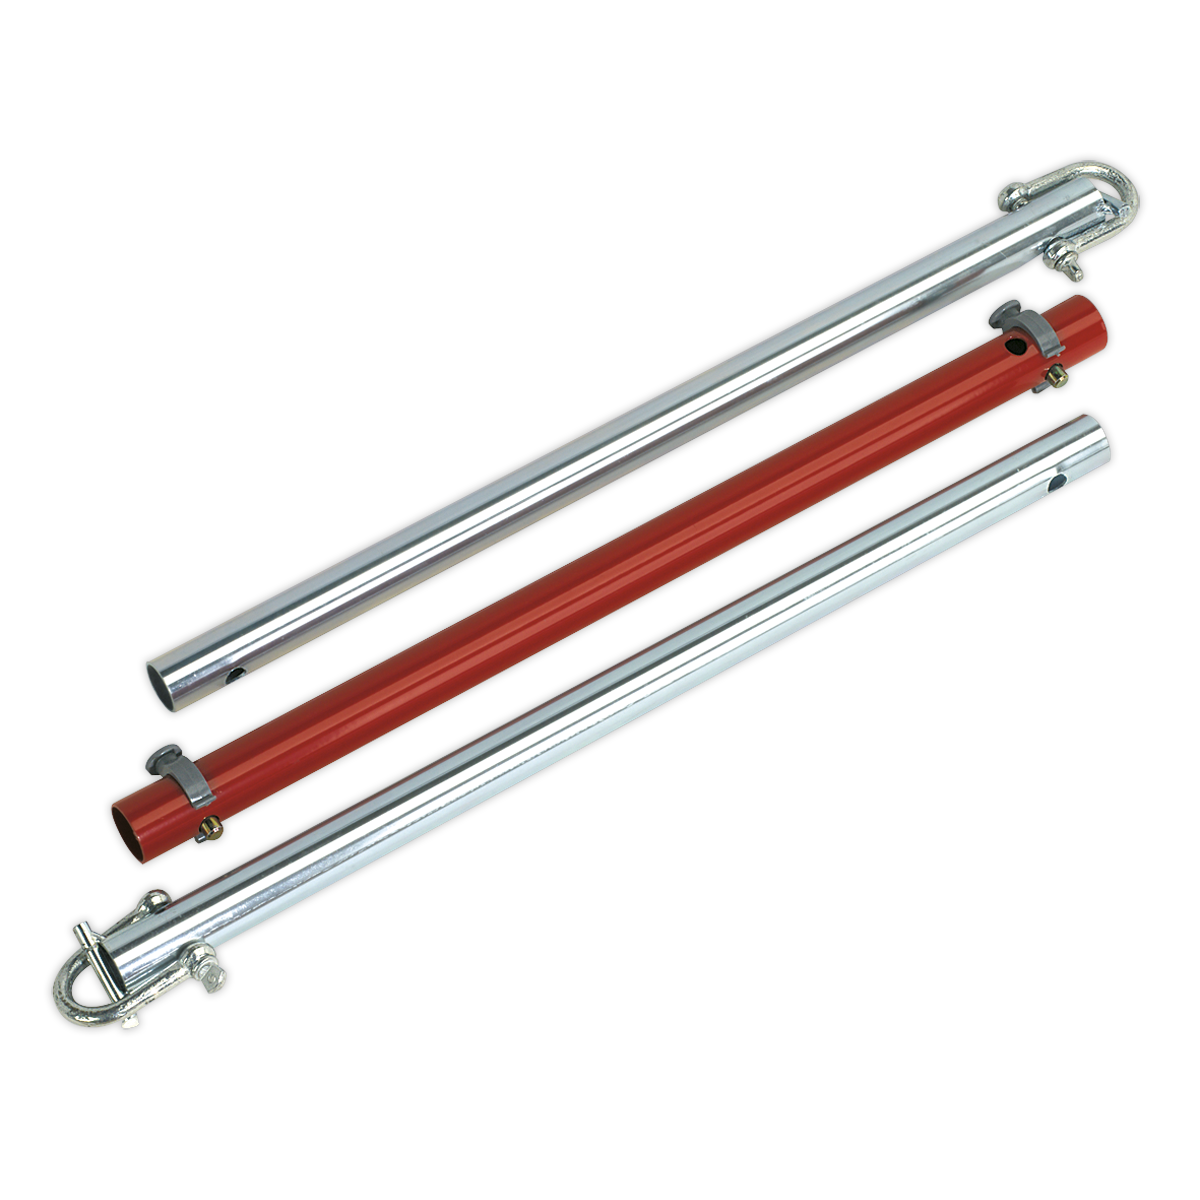 Tow Pole 2500kg Rolling Load Capacity